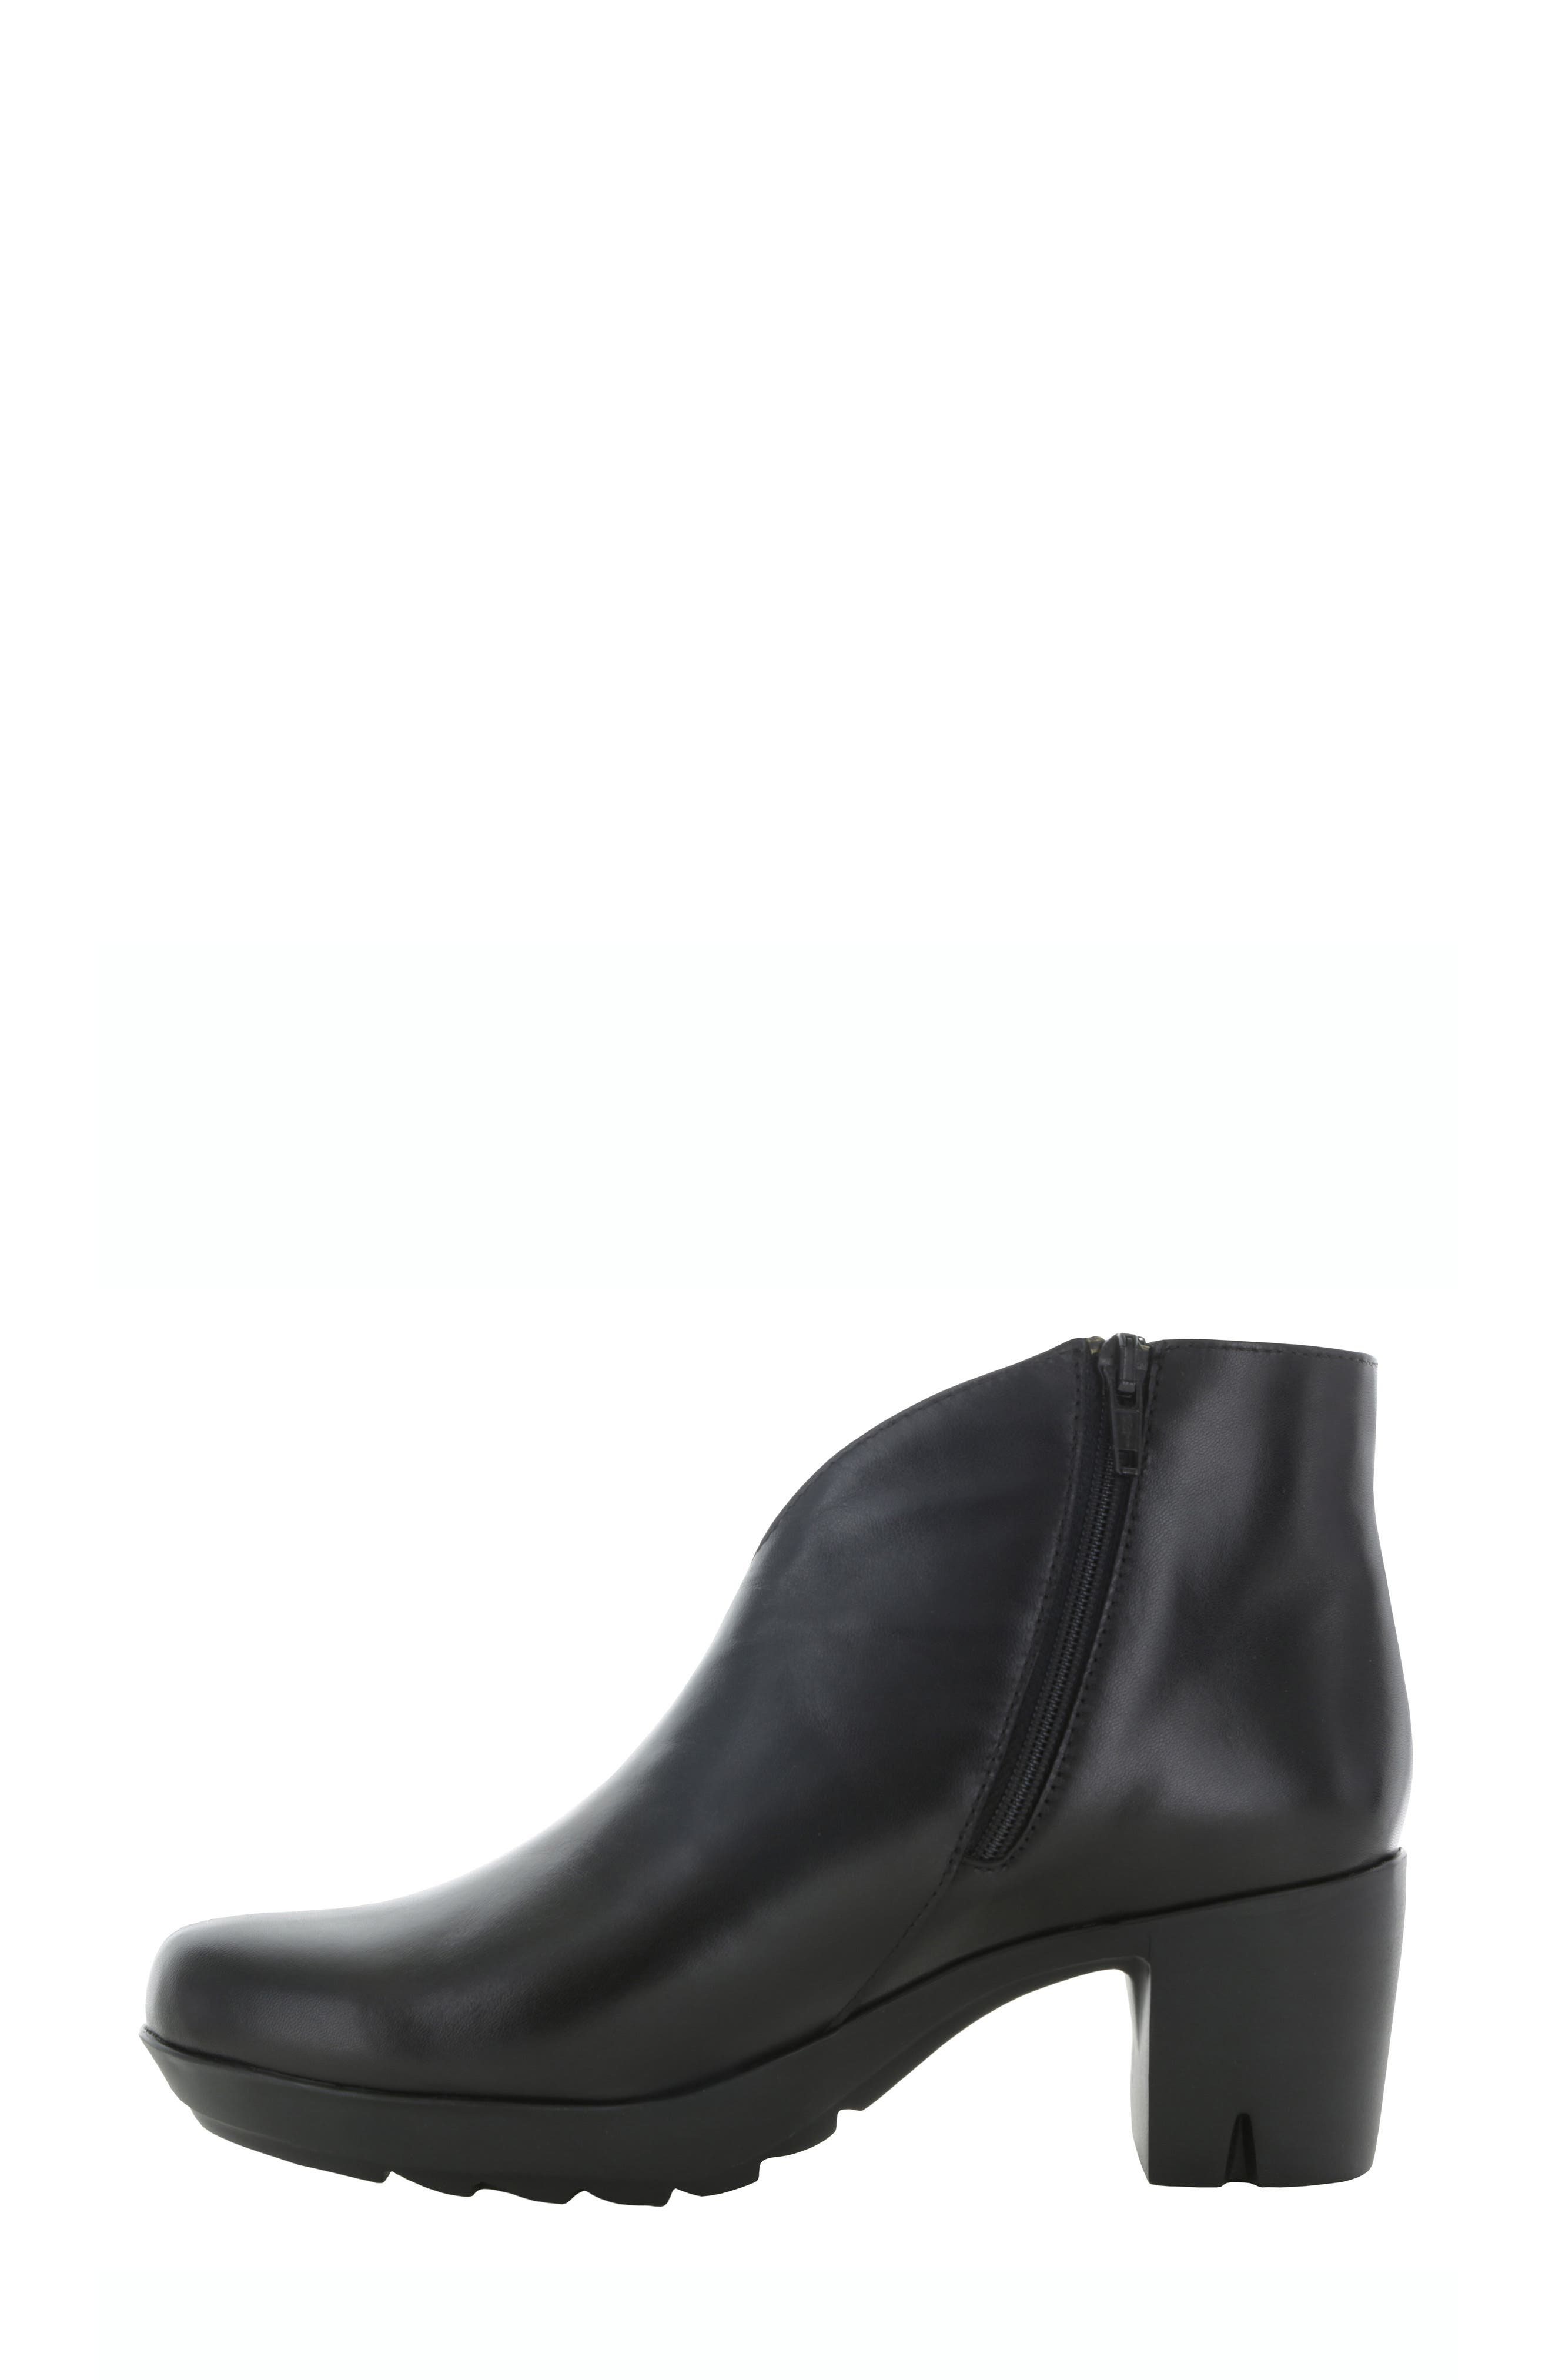 MUNRO, Robynette Bootie, Alternate thumbnail 2, color, BLACK LEATHER